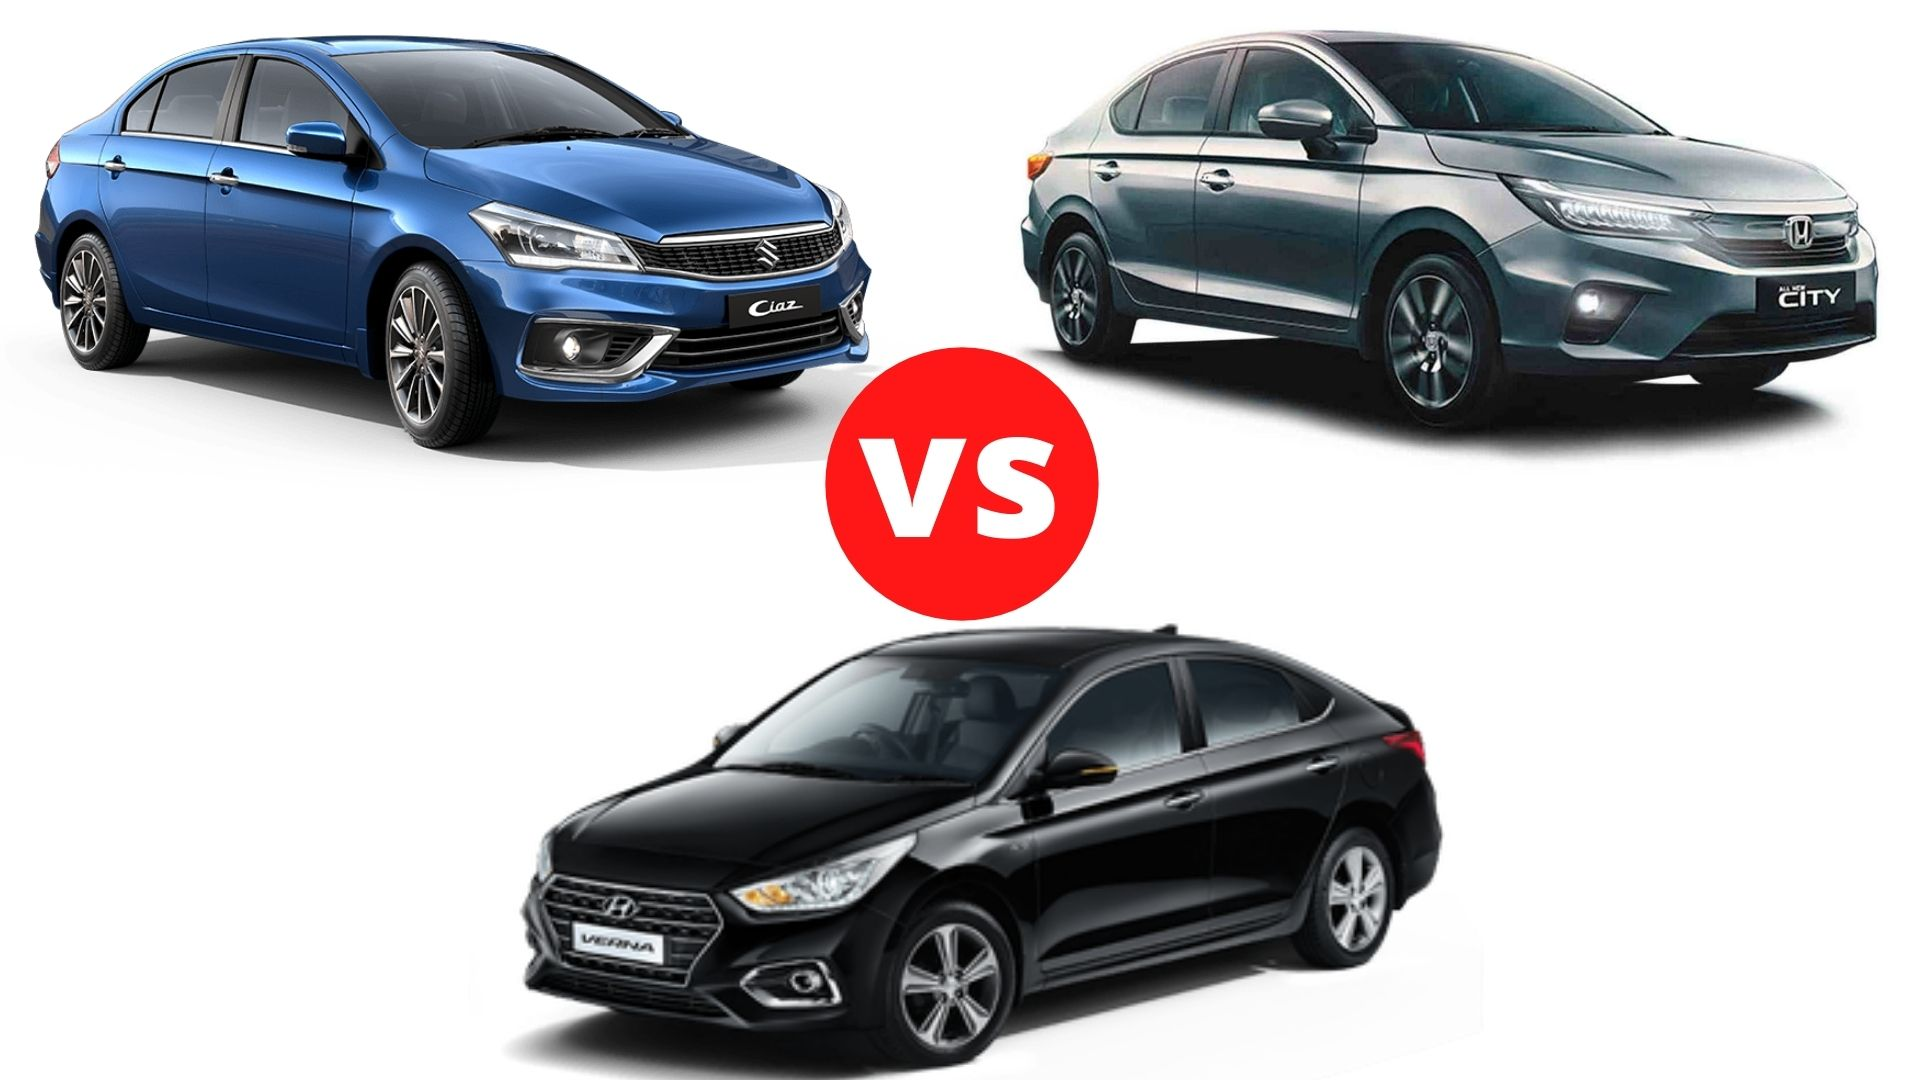 Maruti Suzuki Ciaz vs Hyundai Verna vs Honda City Comparison